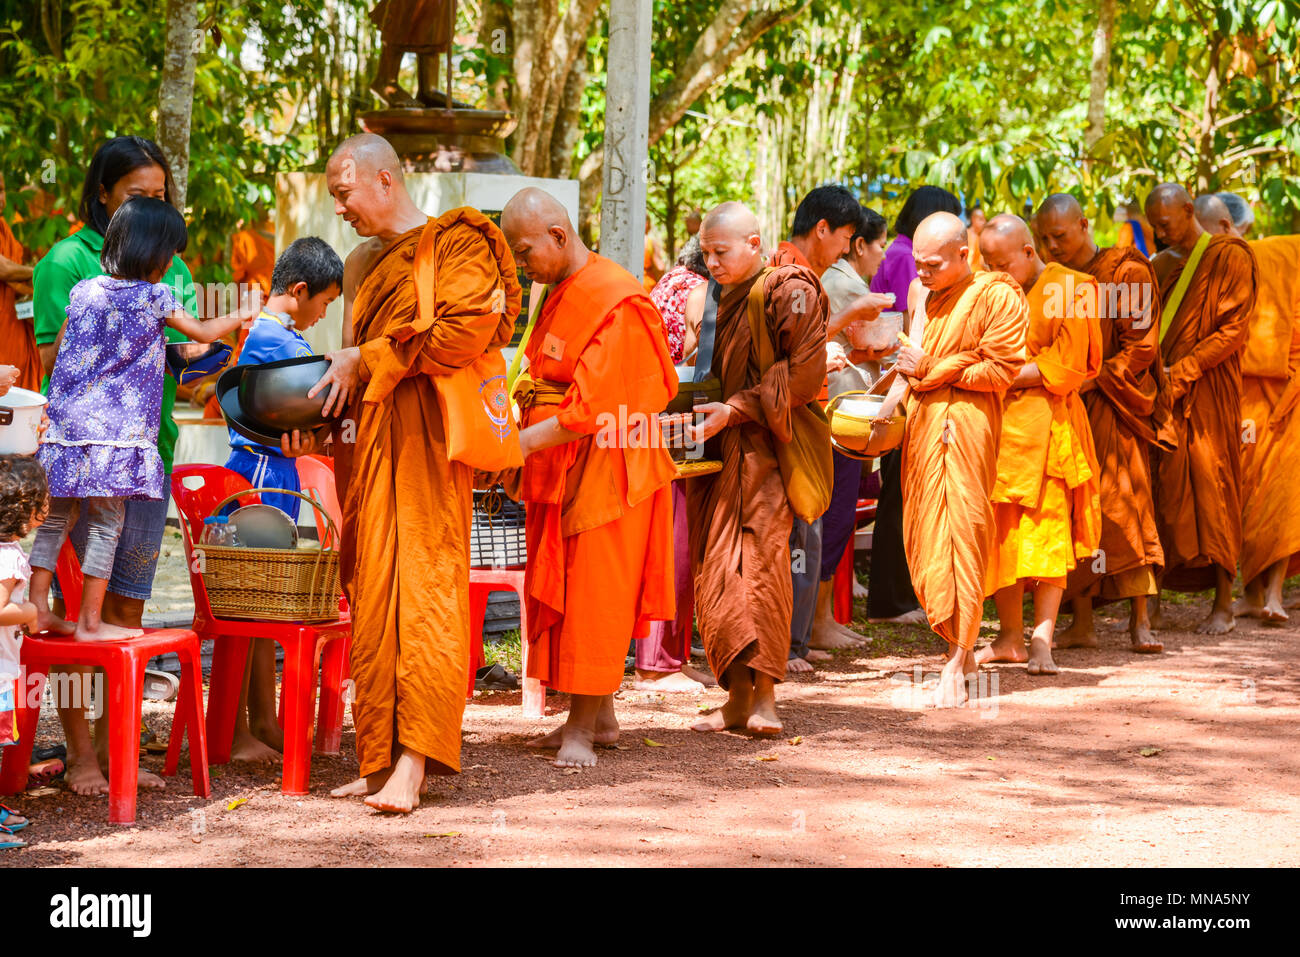 Krabi, Thailand - May 3, 2015: People offering food and things to group of Buddhist monks in morning in public park in Krabi, Thailand - Stock Image